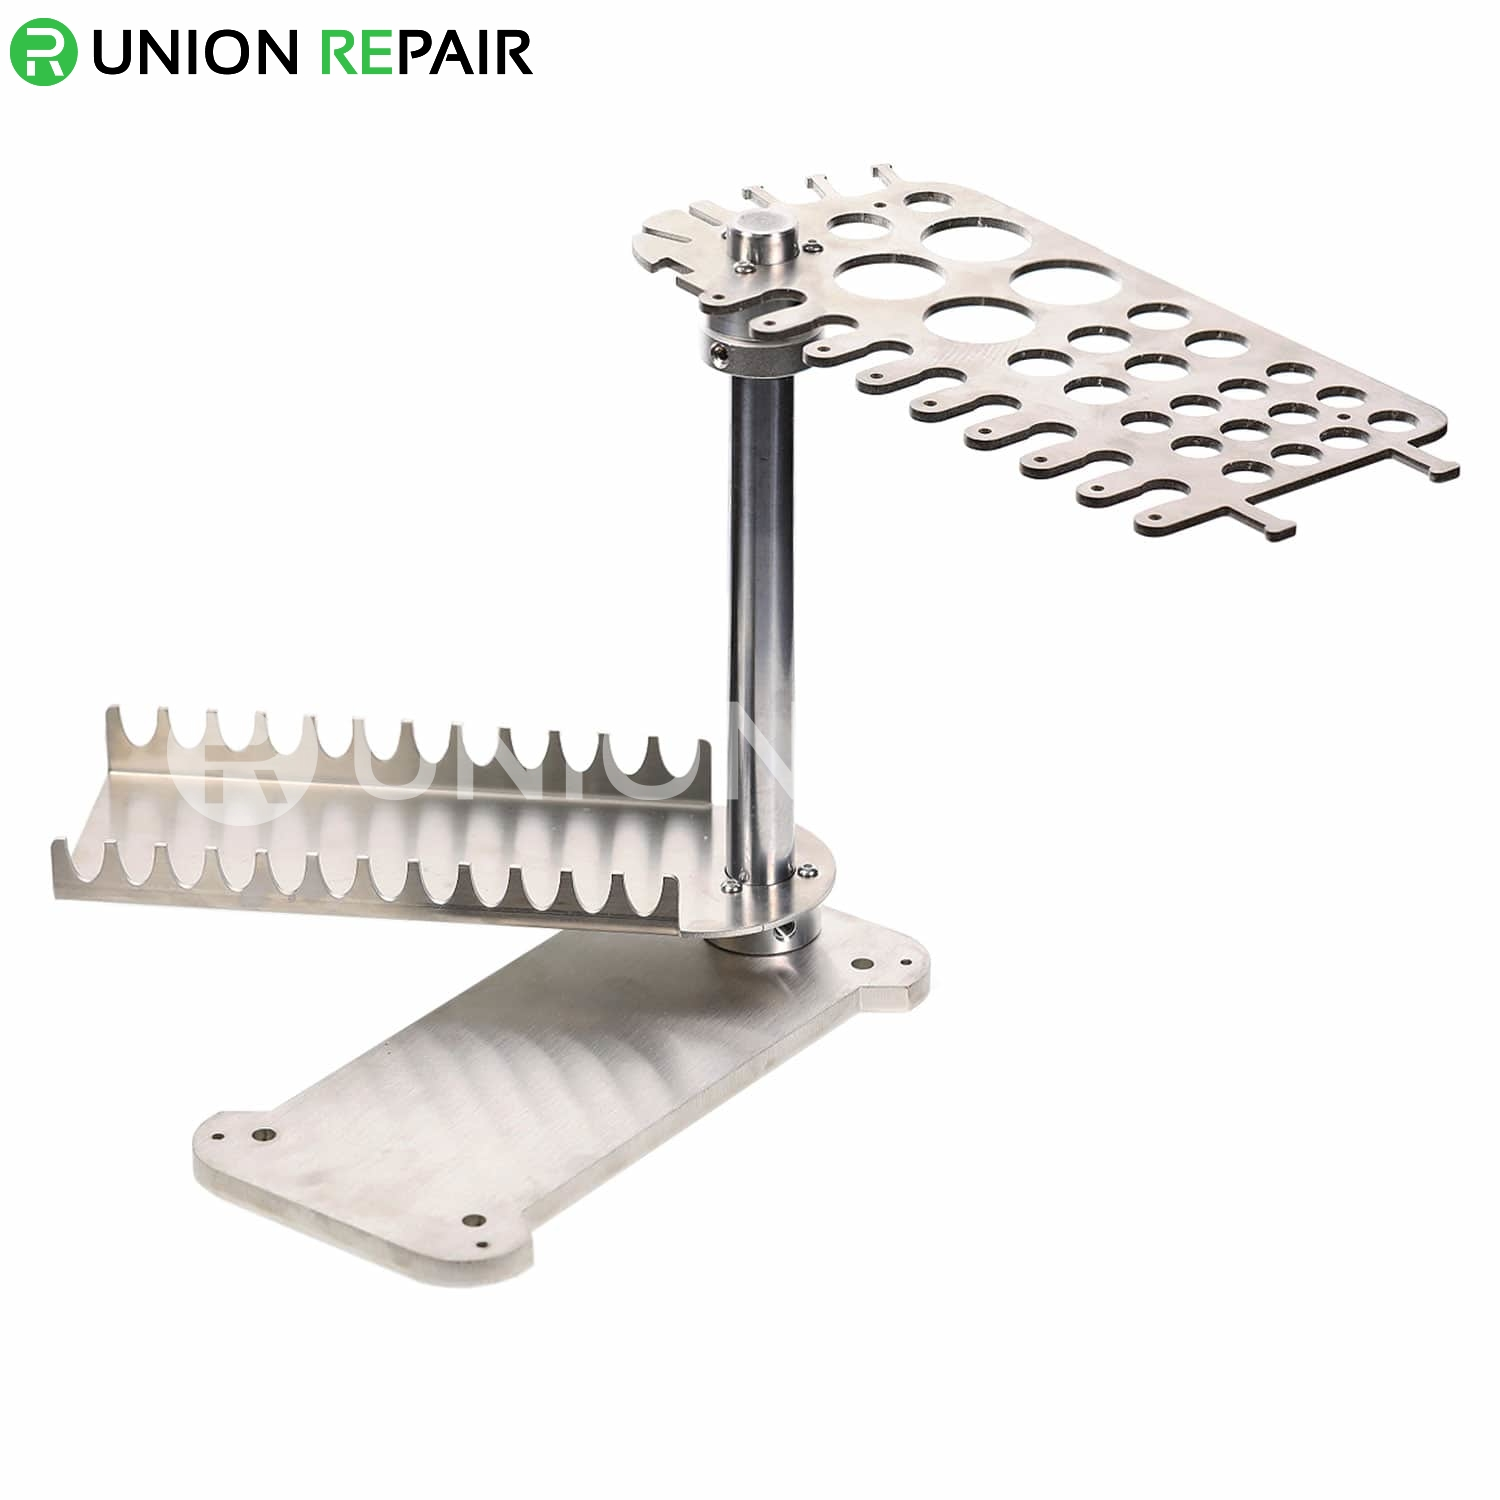 Aluminum Alloy Rotatable Screwdrivers Tool Weapon Rack, fig. 8